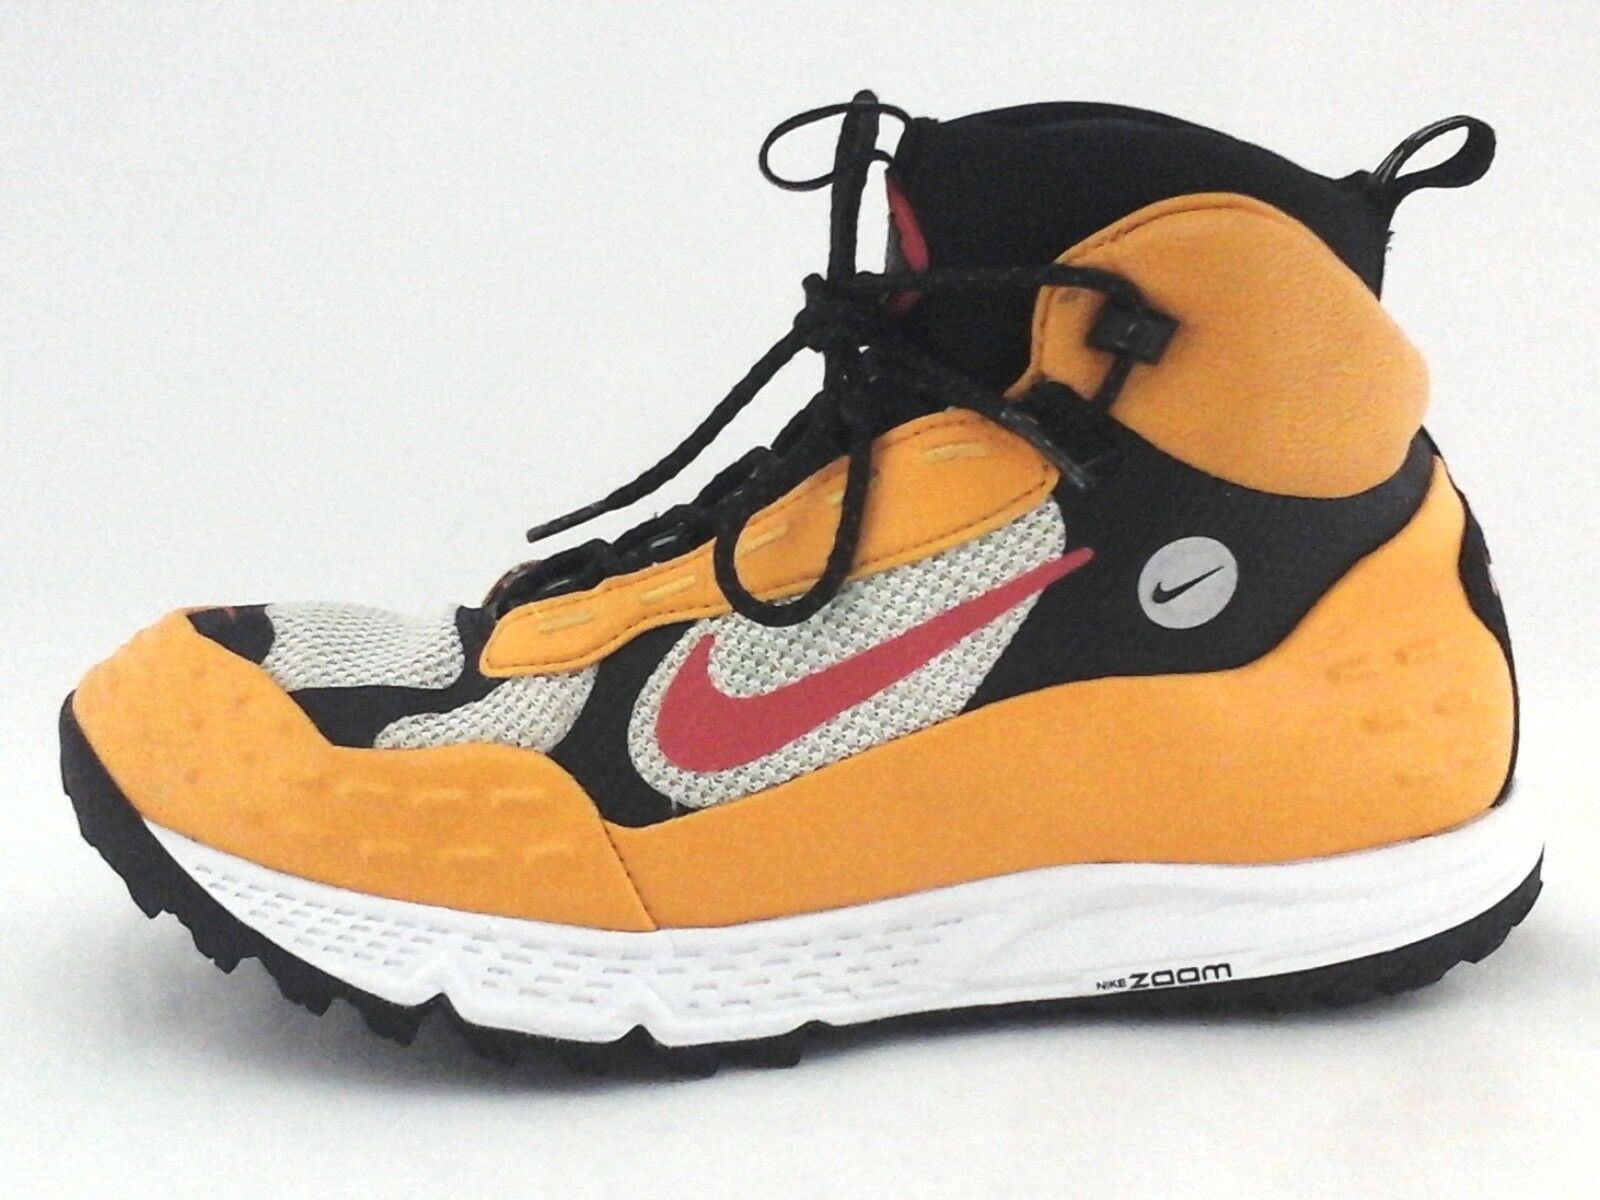 new style 5a12c 5853e ... NIKE ZOOM Hiking Shoes Gold Gray Black Gold Gray Black Gold  ...